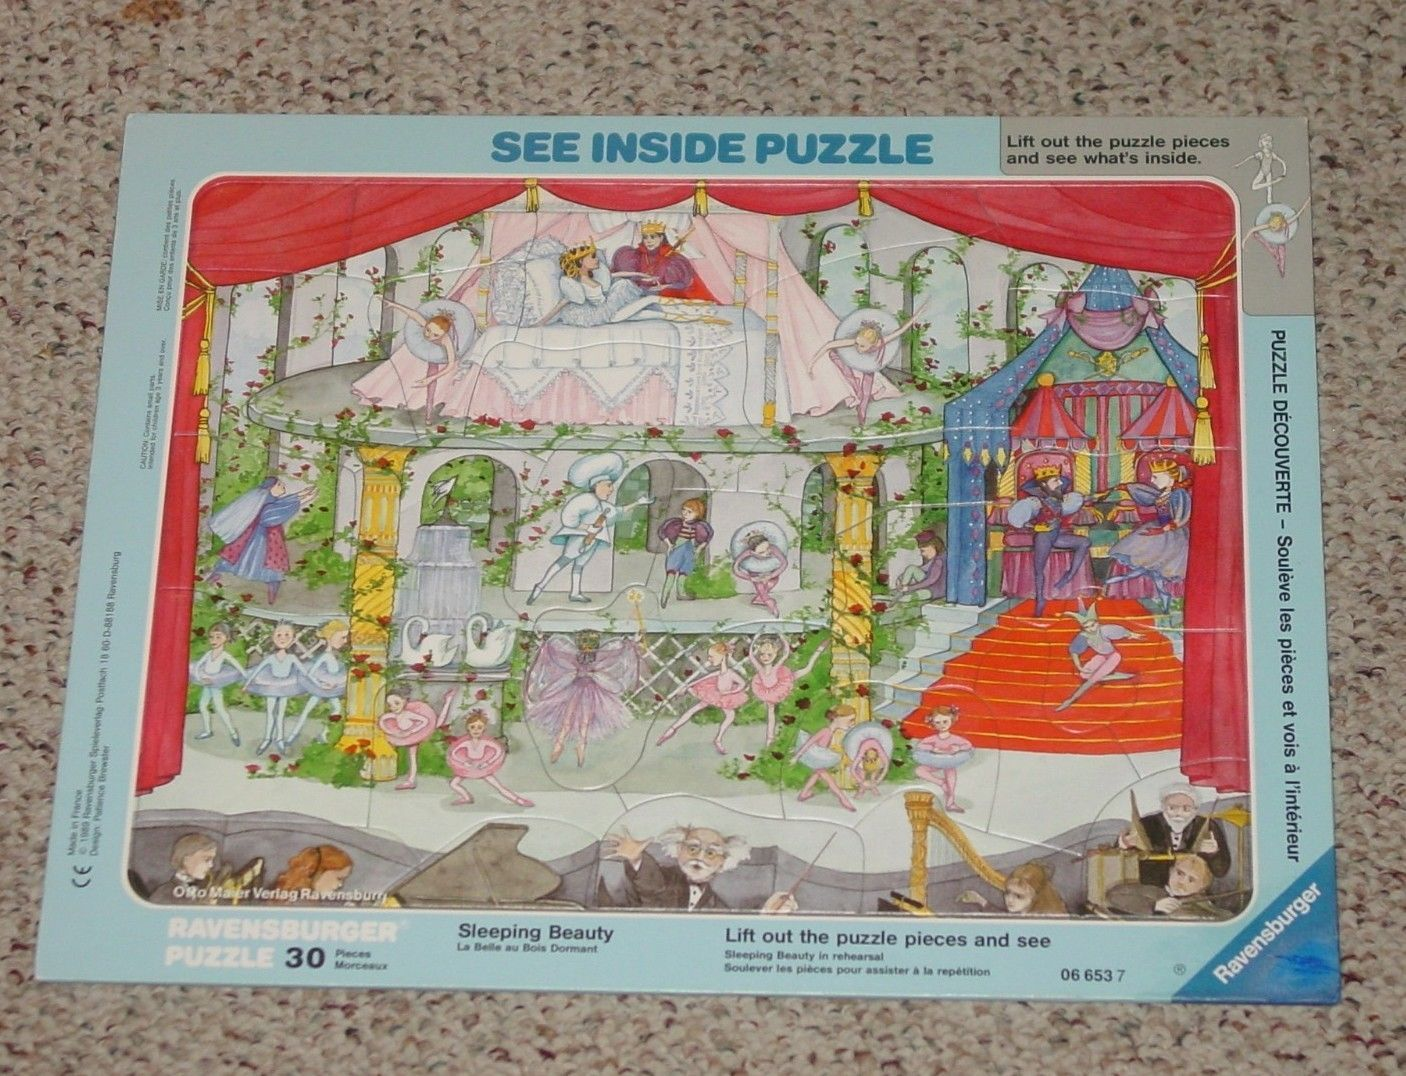 Primary image for PUZZLE SLEEPING BEAUTY SEE INSIDE PUZZLE 30 PIECES 1989 RAVENSBURGER COMPLETE